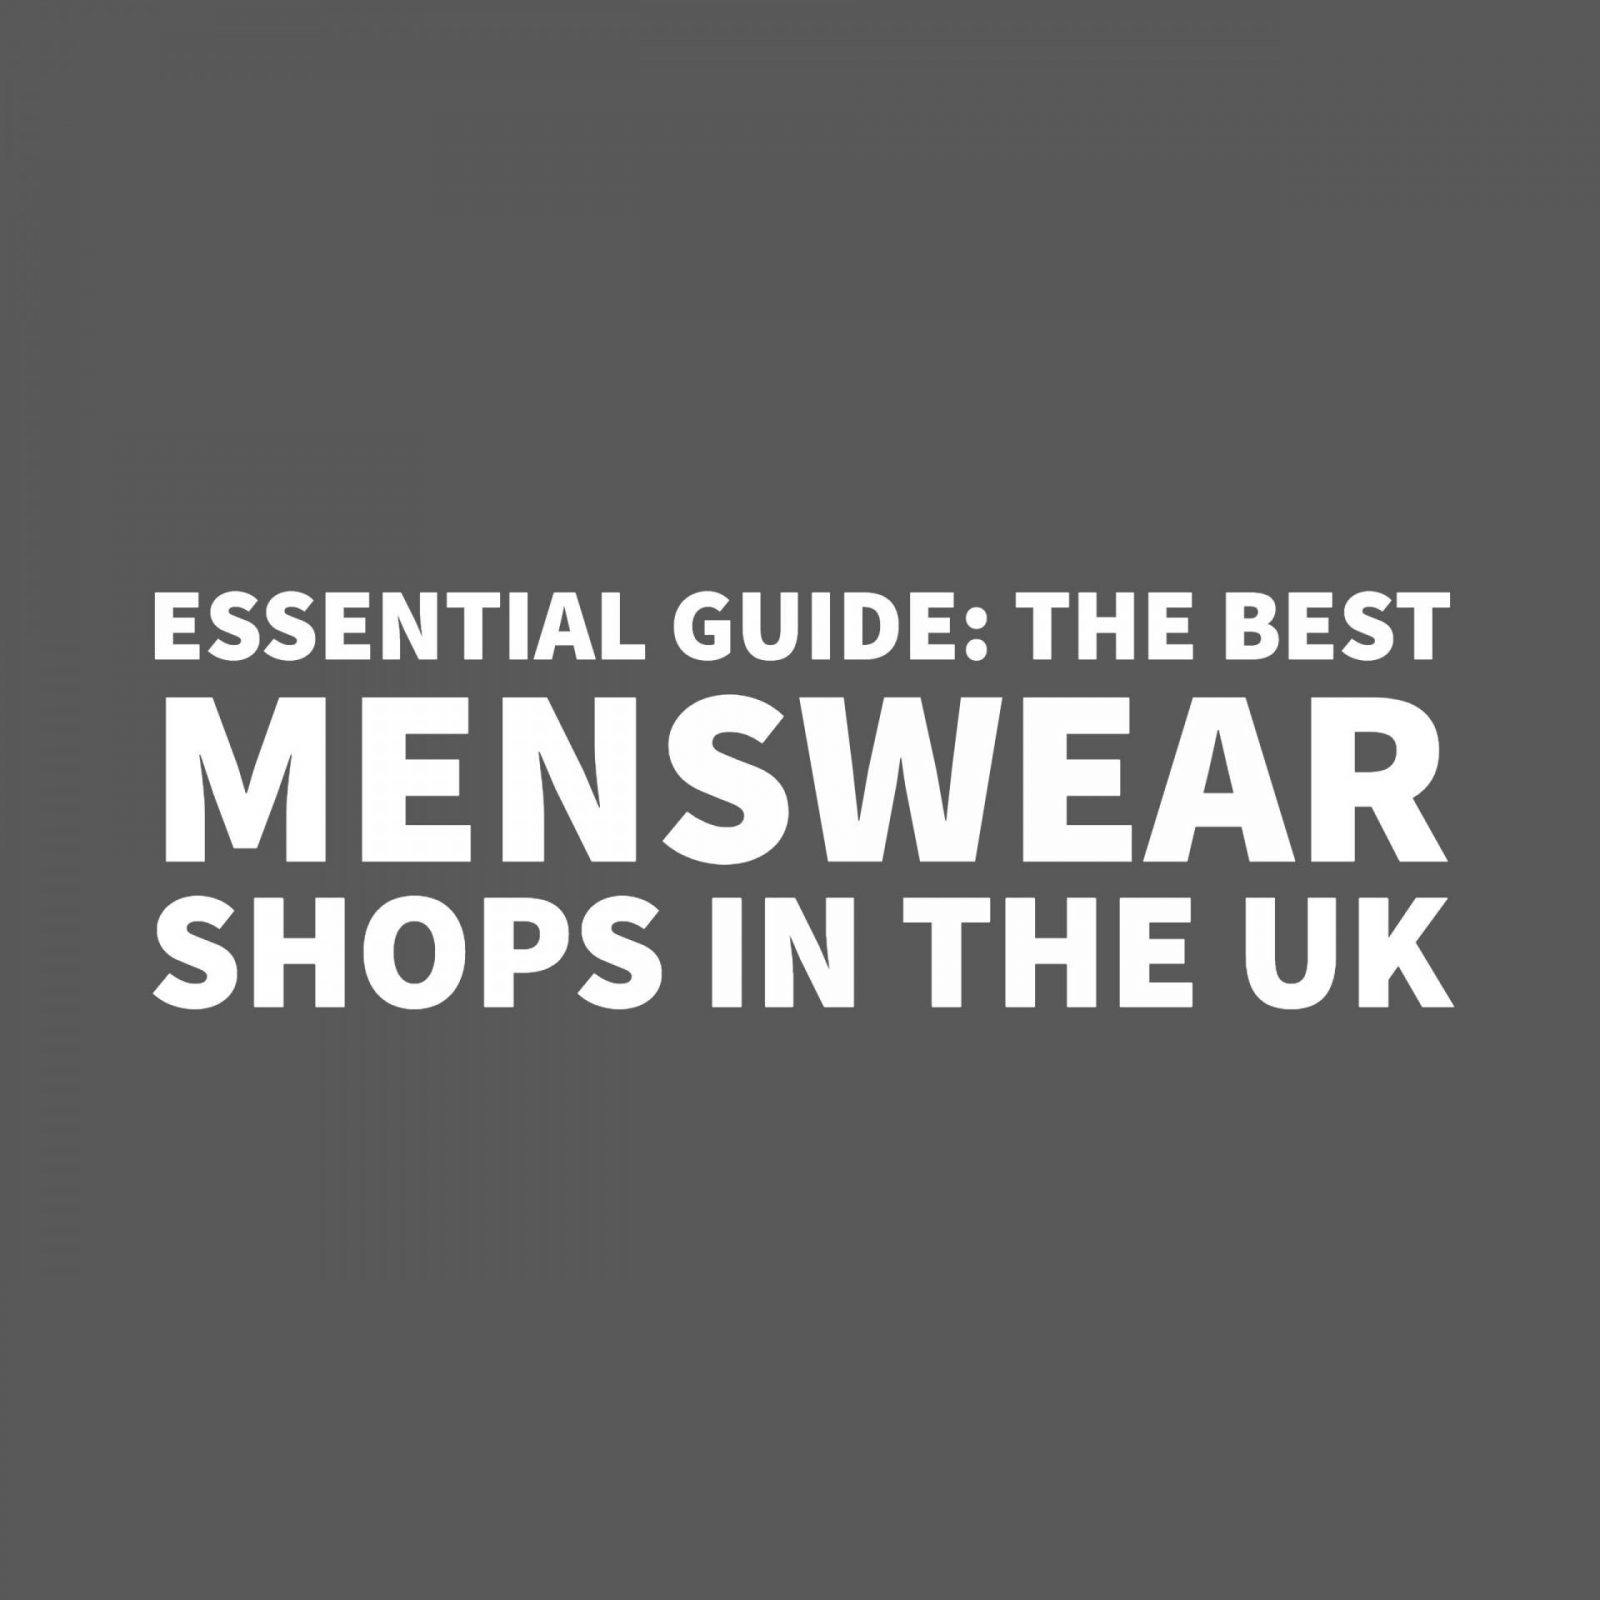 Essential Guide: The Best Menswear Shops In The UK